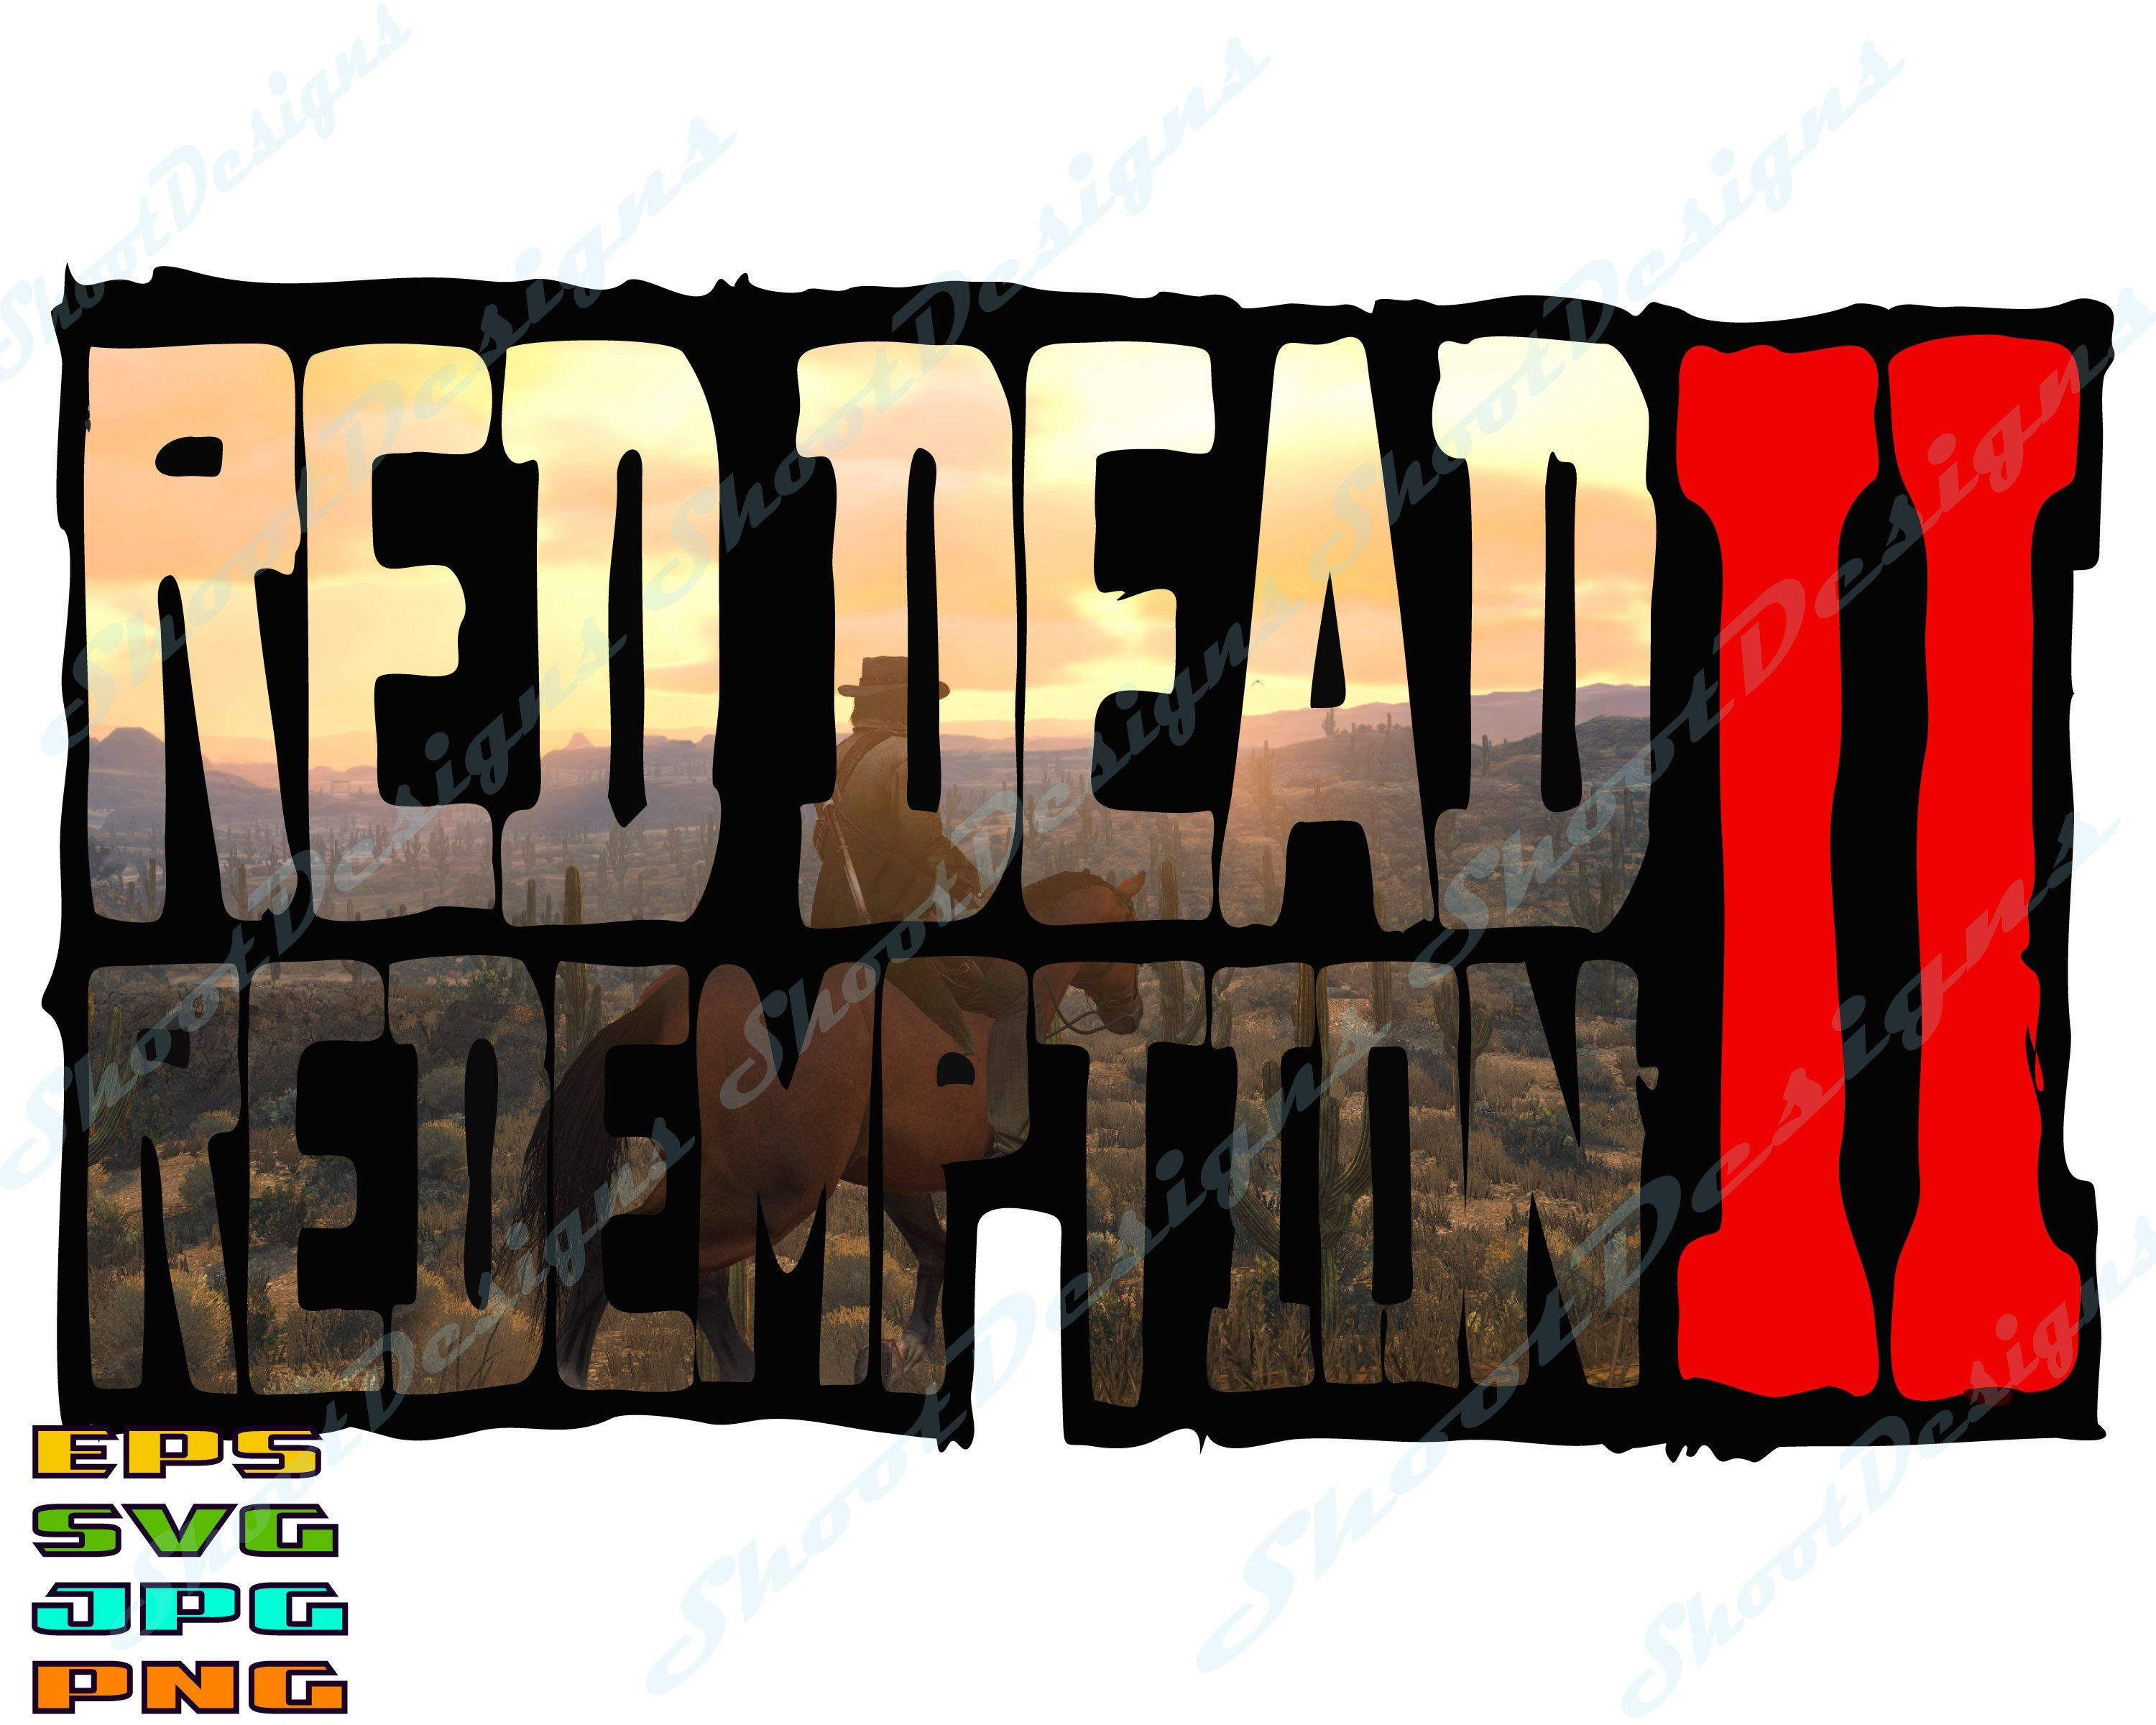 Red Dead Svg, dead redemption 2, red dead redemption, red.